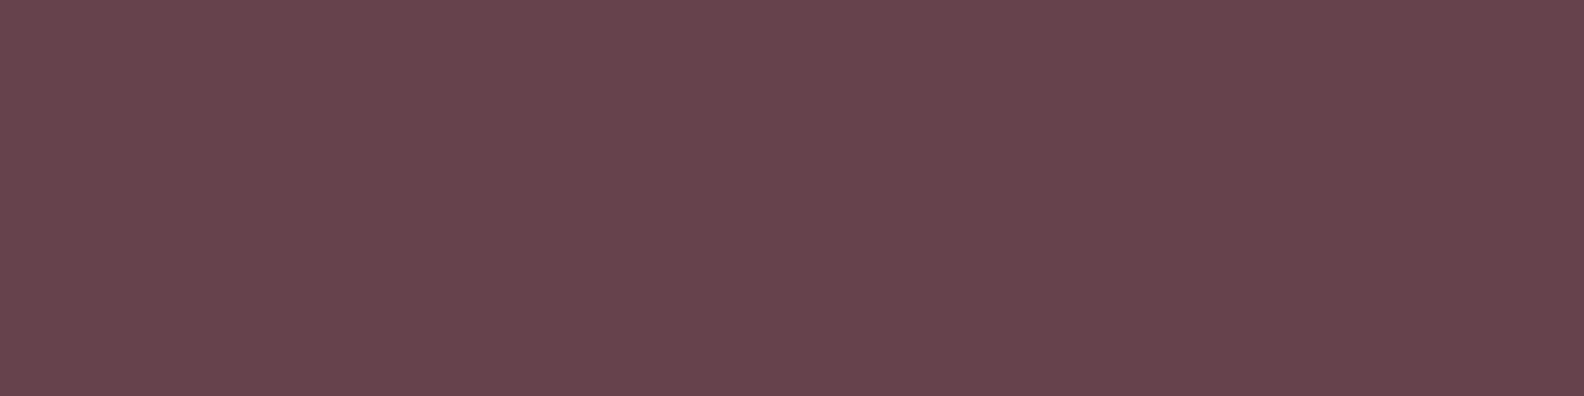 1584x396 Deep Tuscan Red Solid Color Background